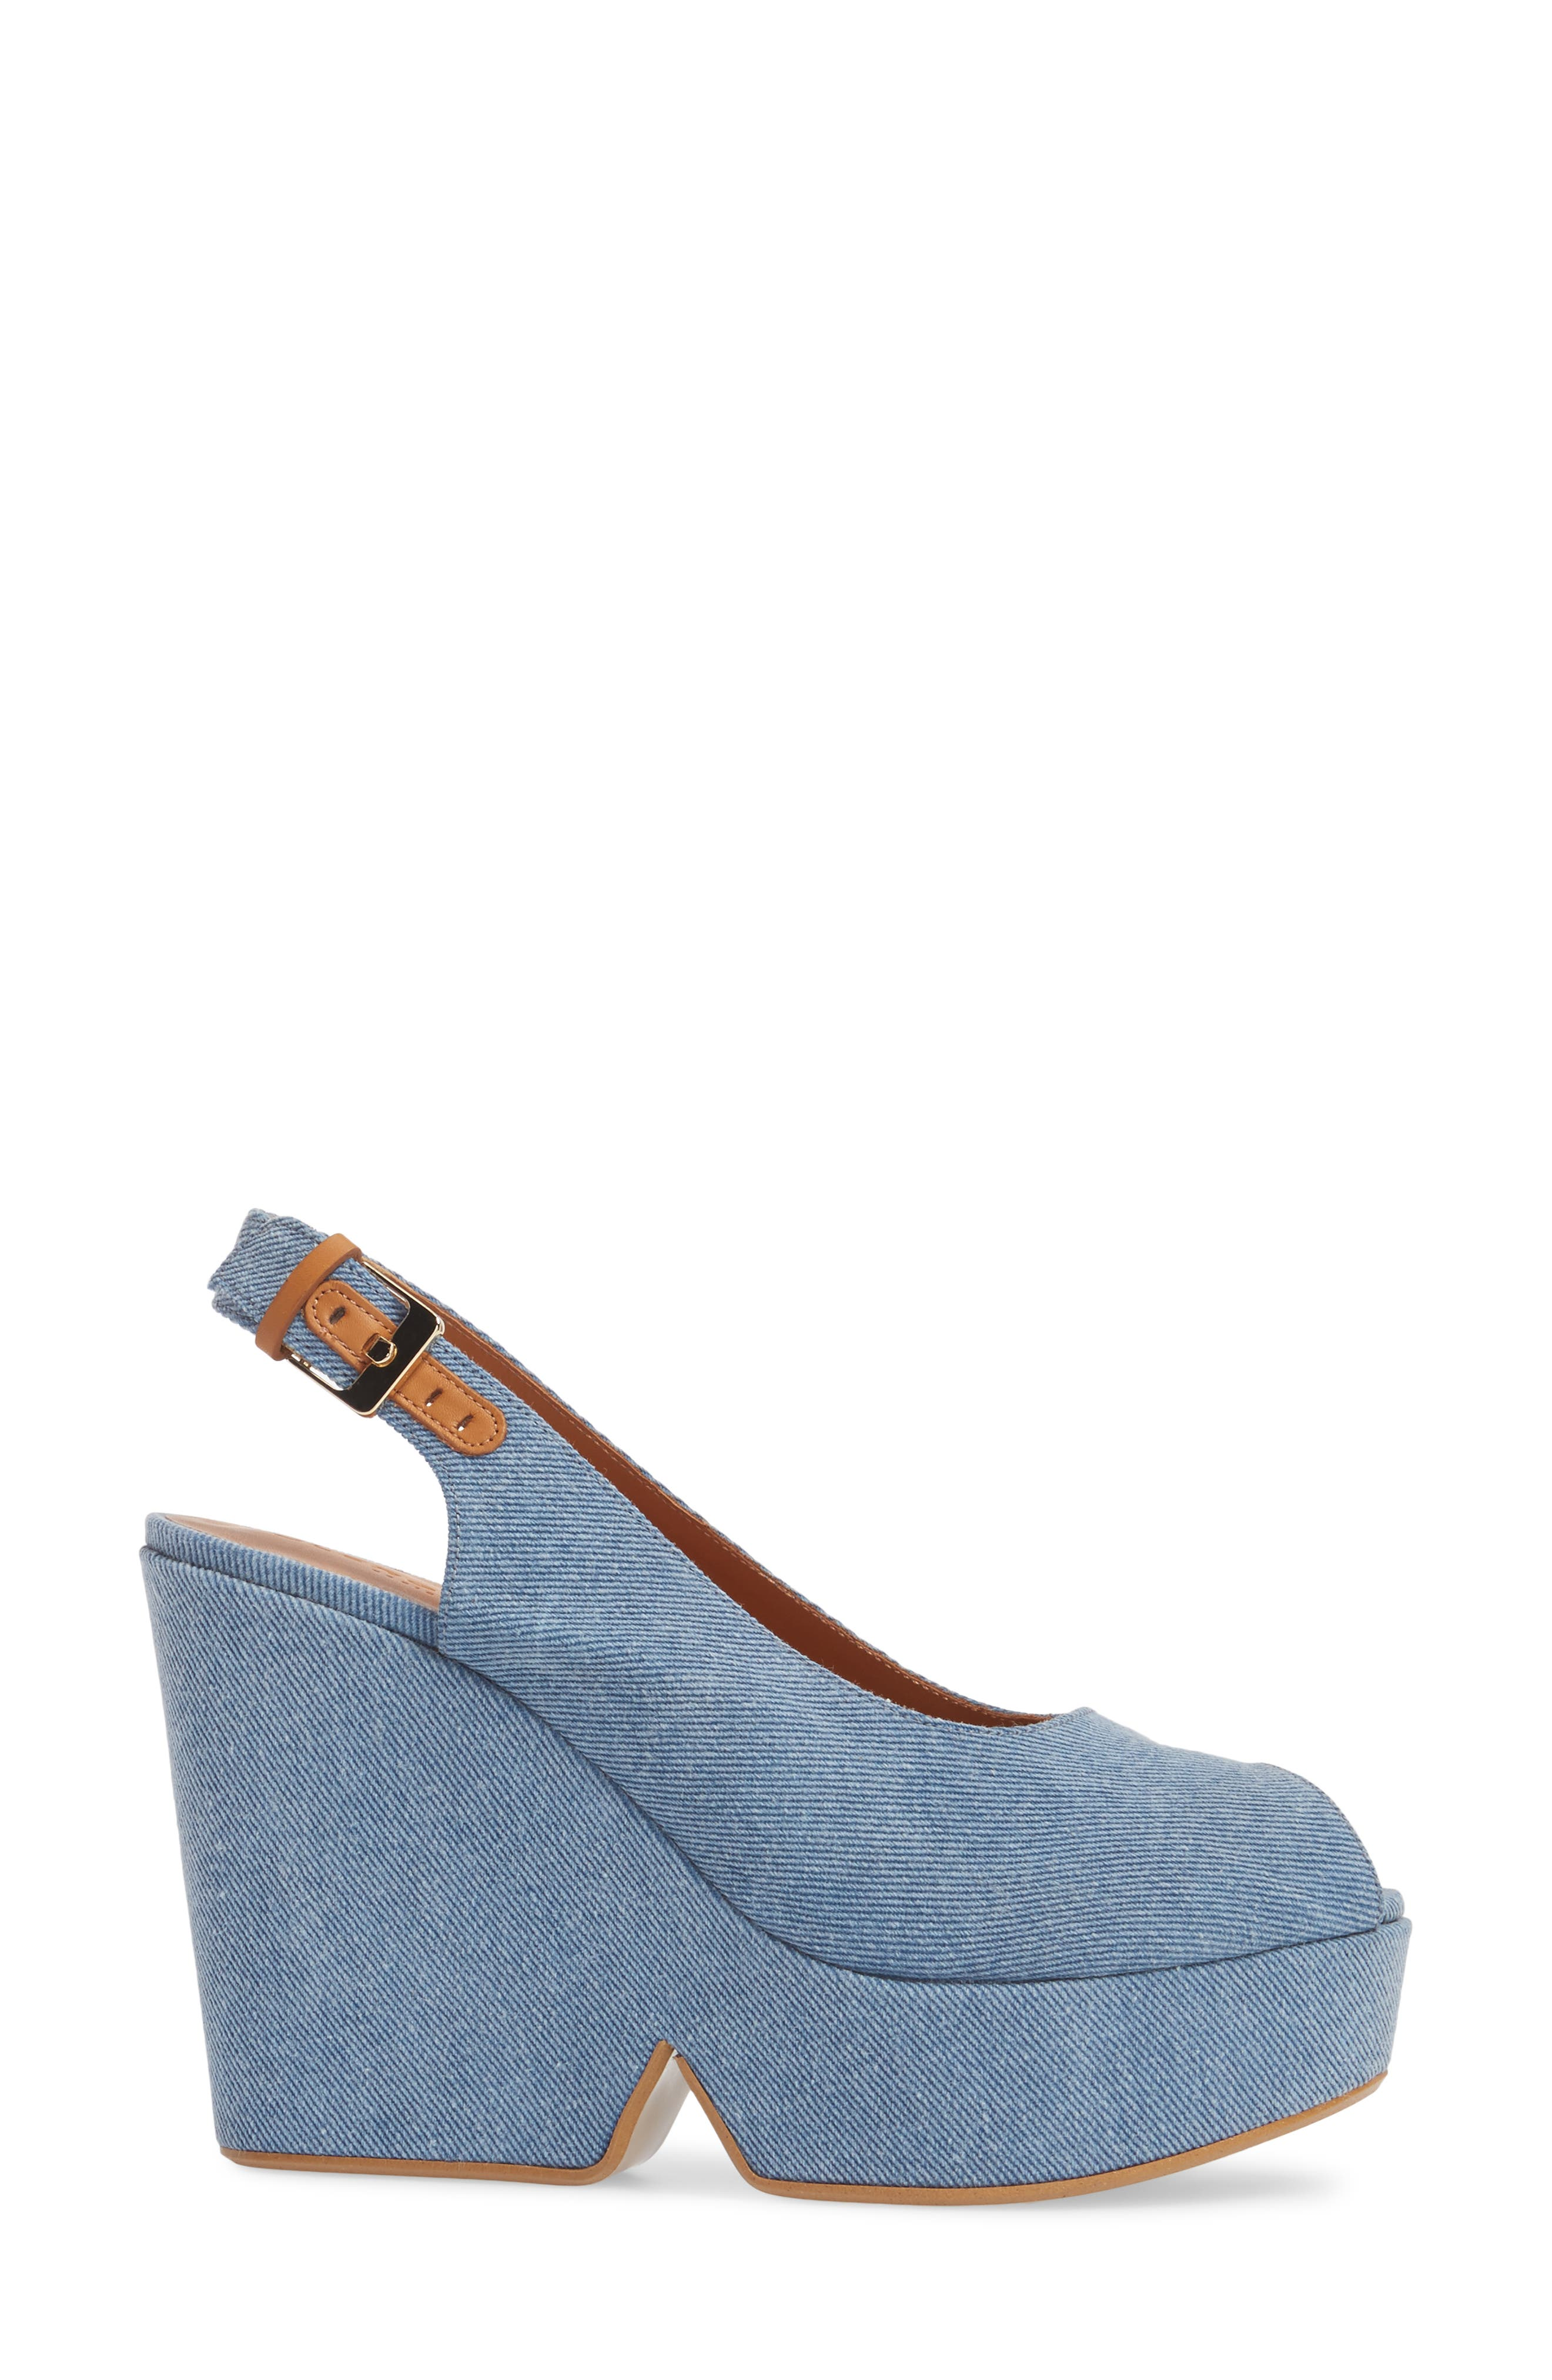 Alternate Image 3  - Robert Clergerie Dylanto Platform Wedge Sandal (Women)